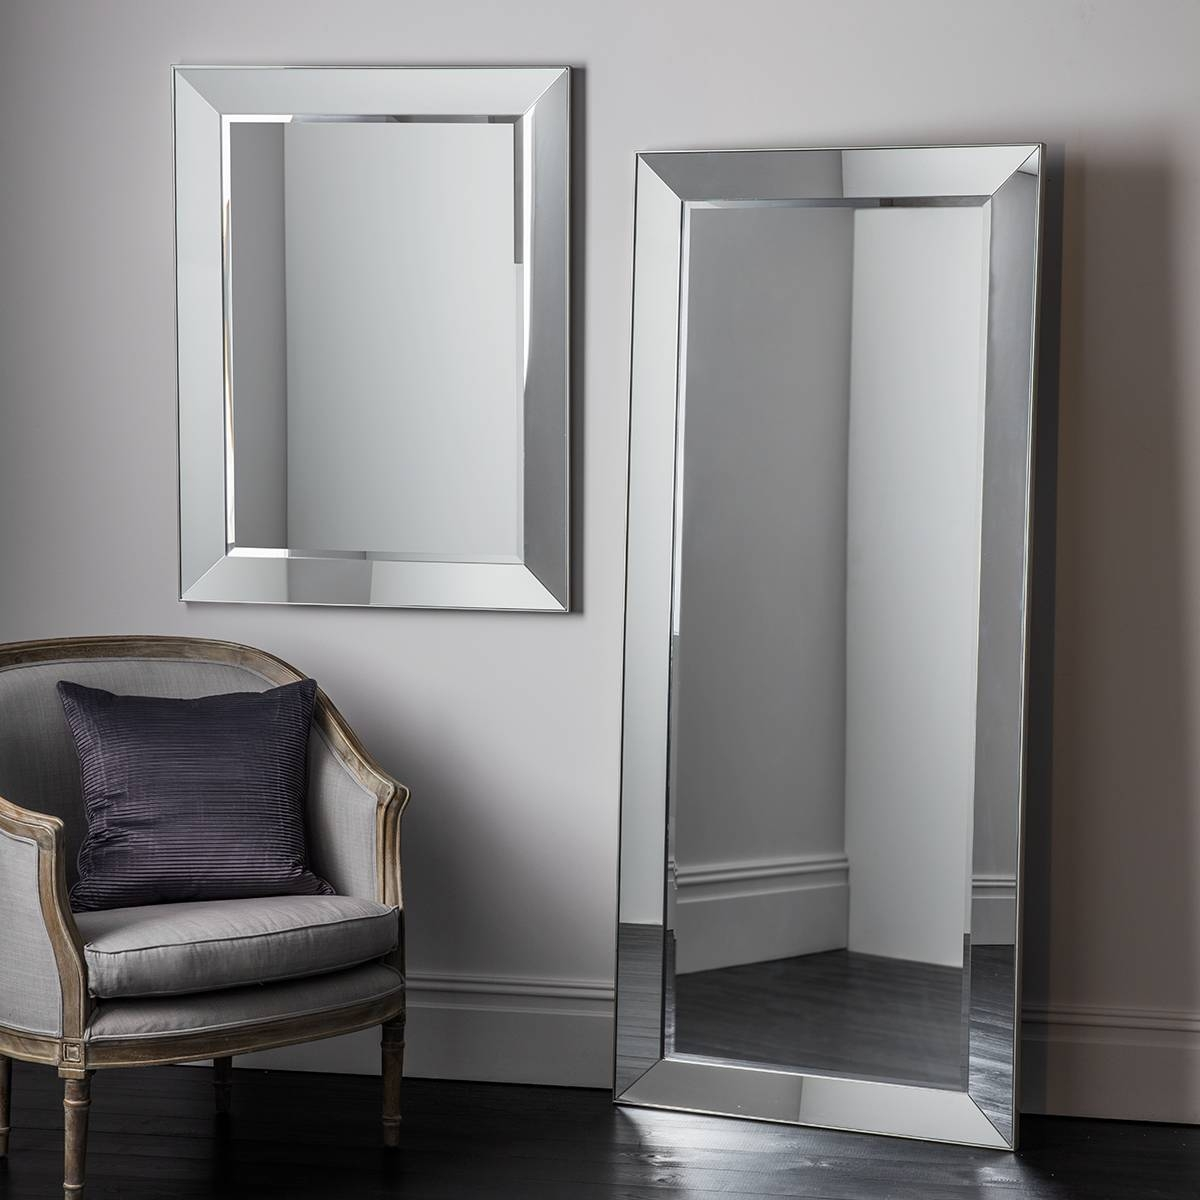 Bedroom: Appealing Oversized Mirrors For Home Decoration Ideas within Chrome Floor Mirrors (Image 3 of 25)